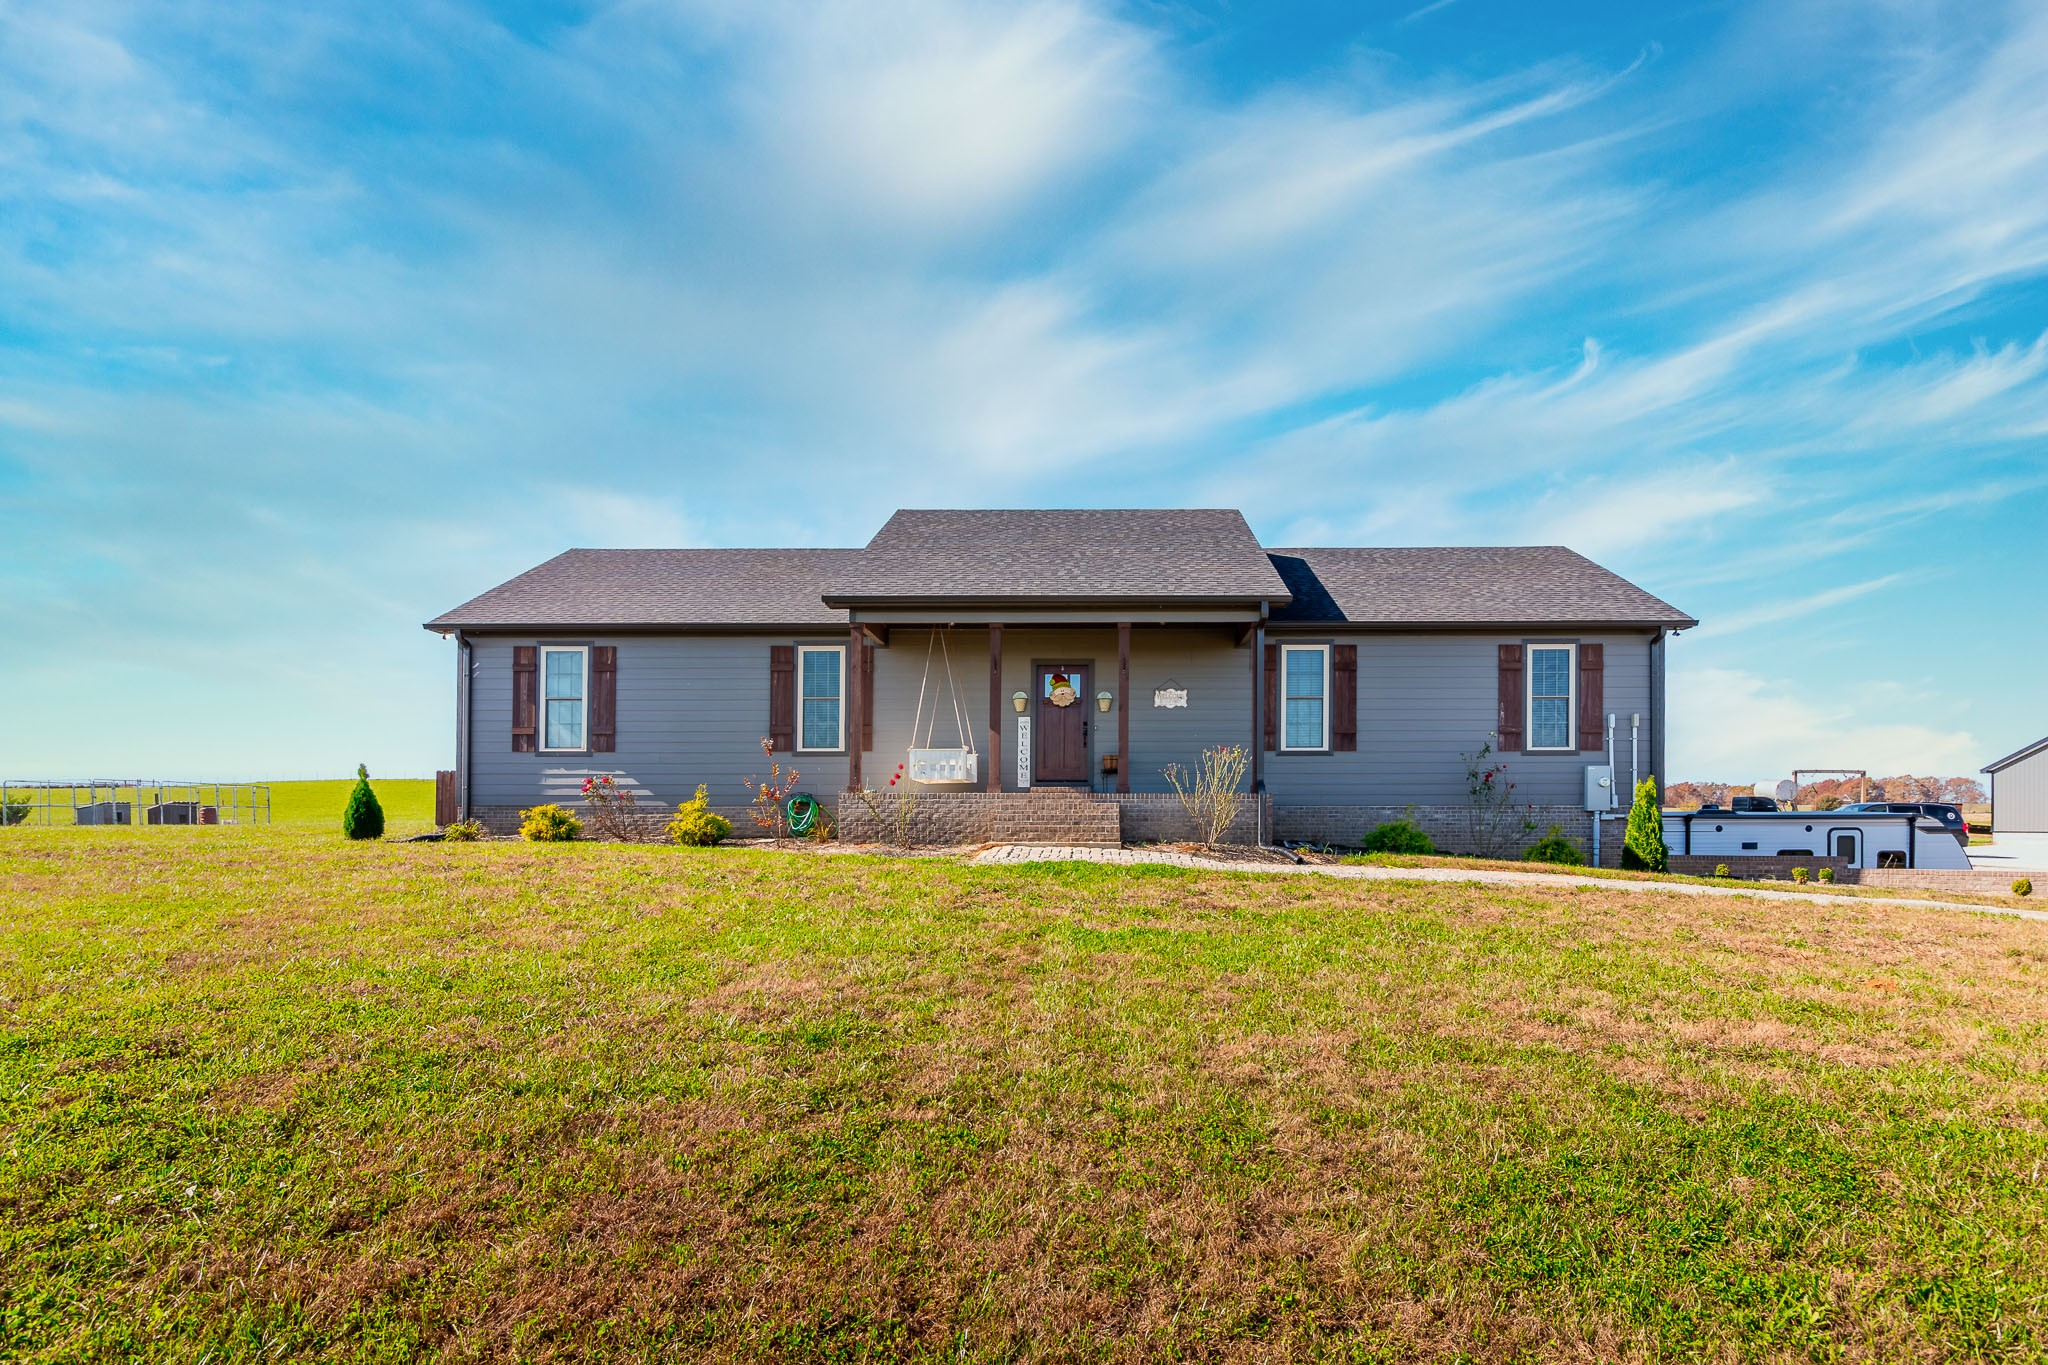 83 Staggs Rd Property Photo - Ethridge, TN real estate listing